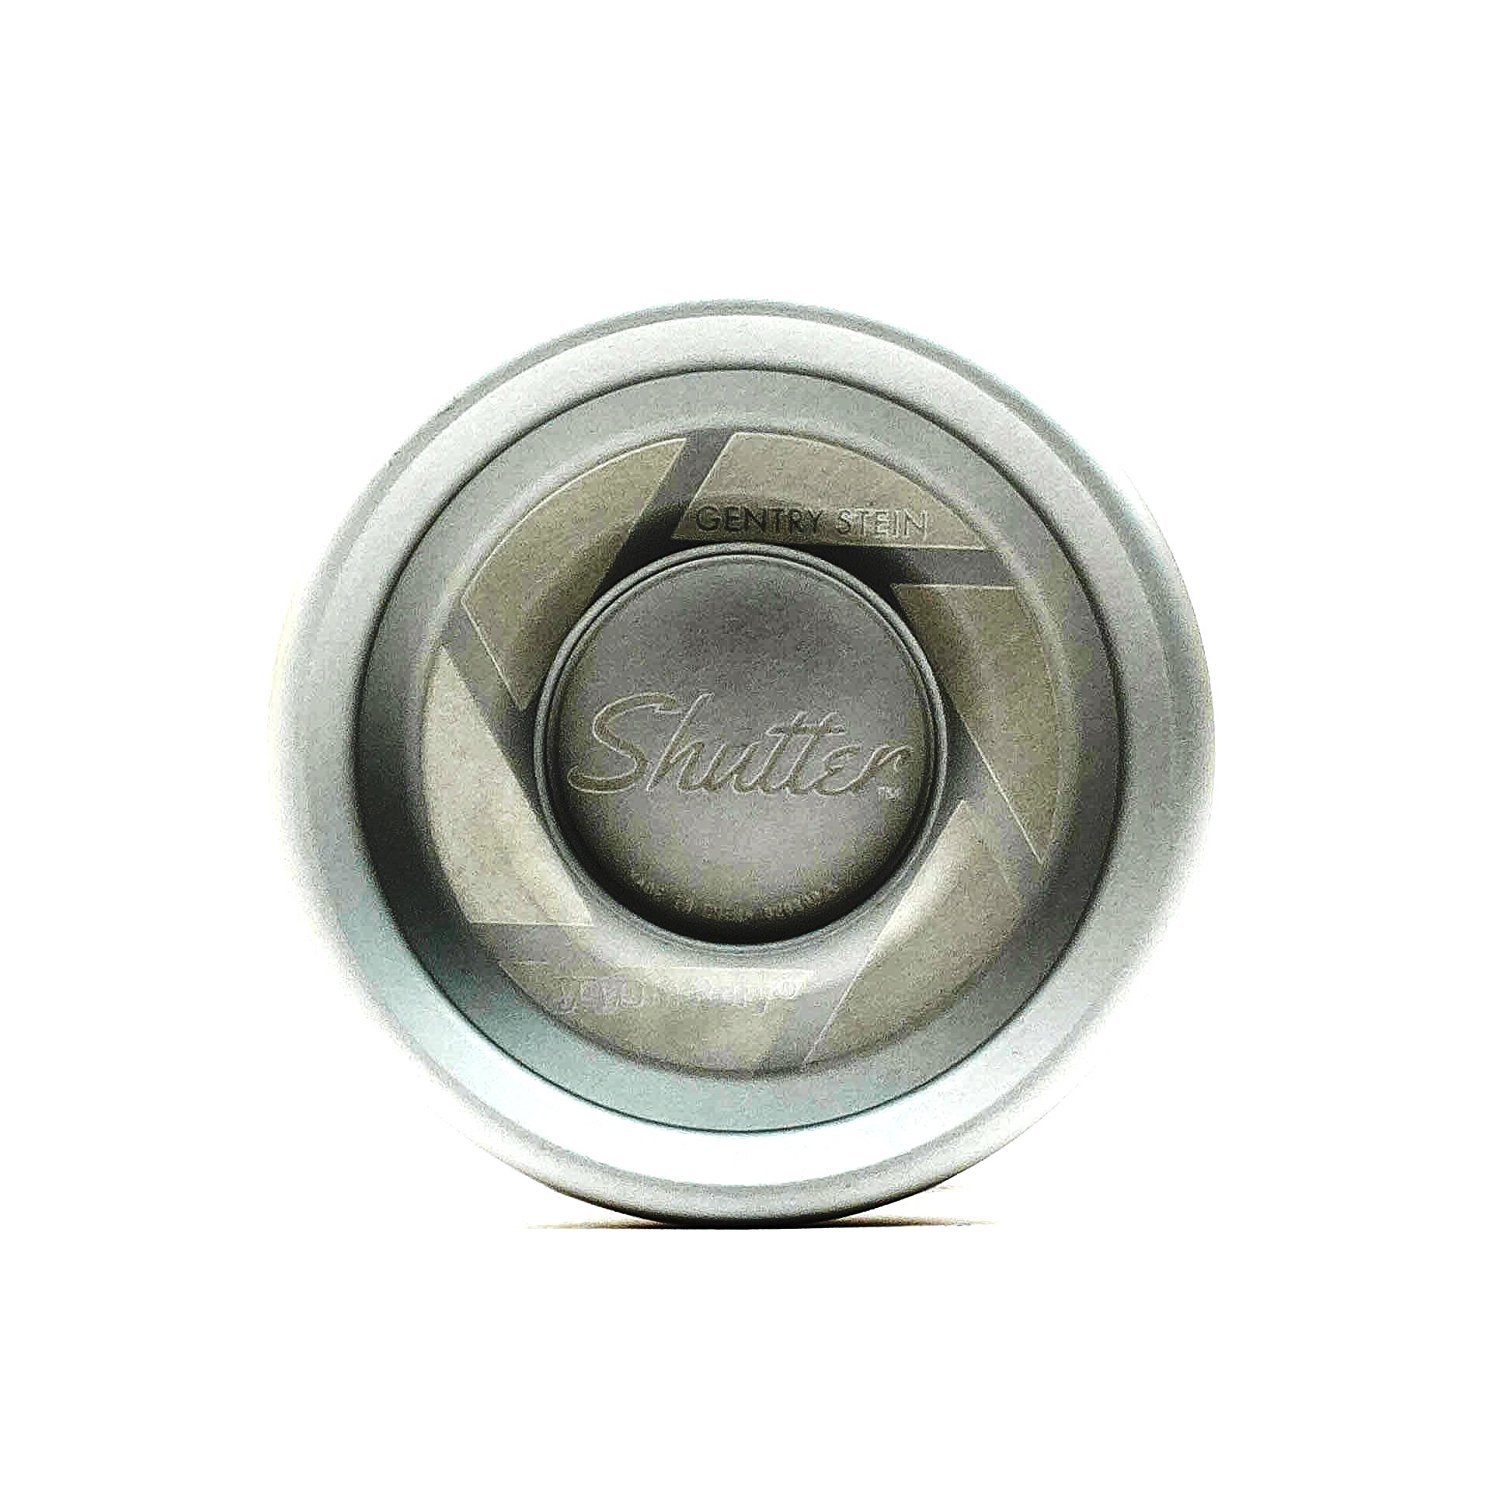 Shutter Professional Yoyo by YoYoFactory Color Brushed Silver